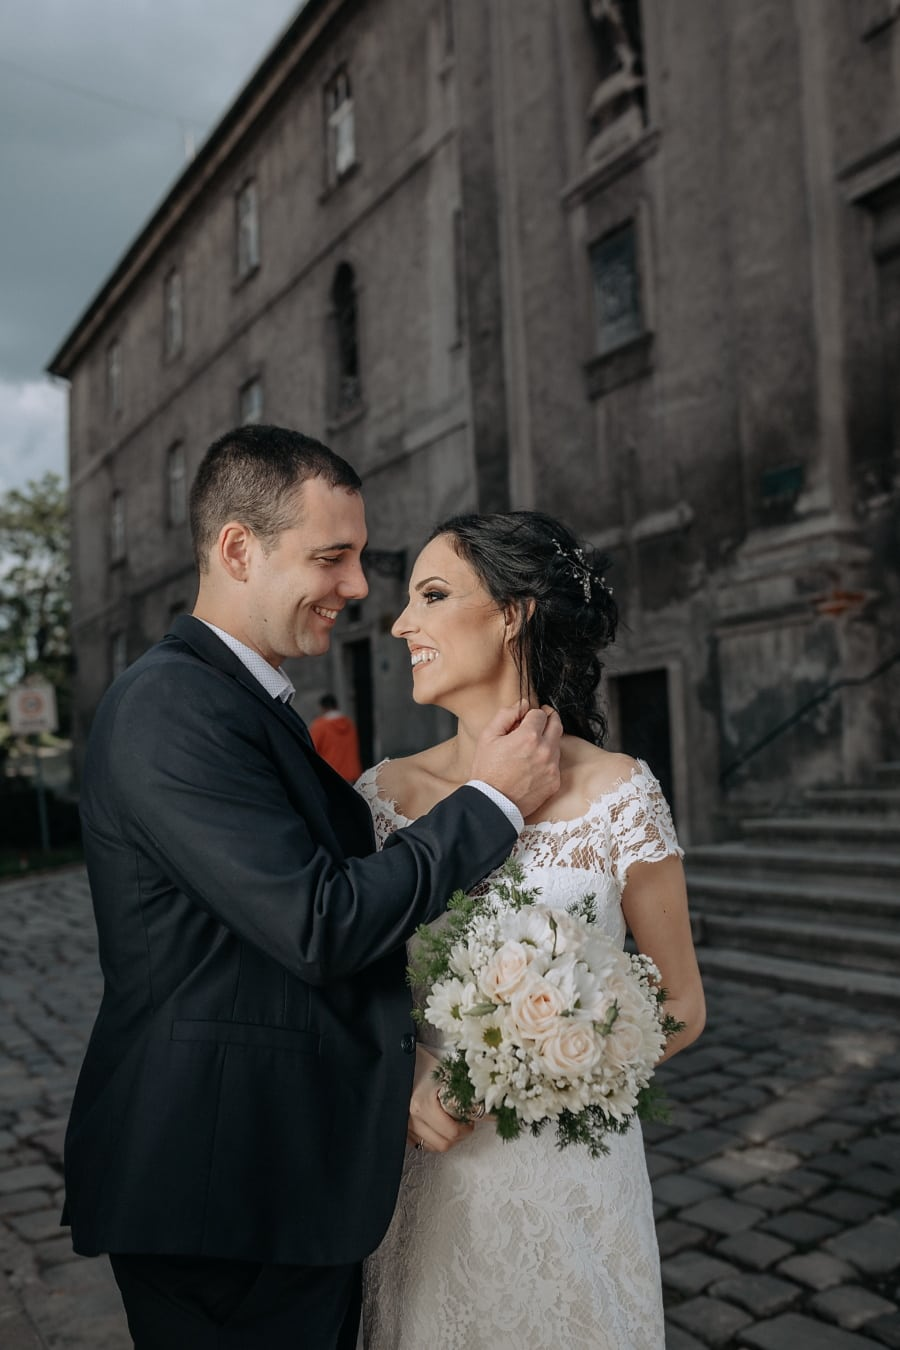 just married, hugging, smiling, architectural style, street, wedding, groom, bride, couple, man